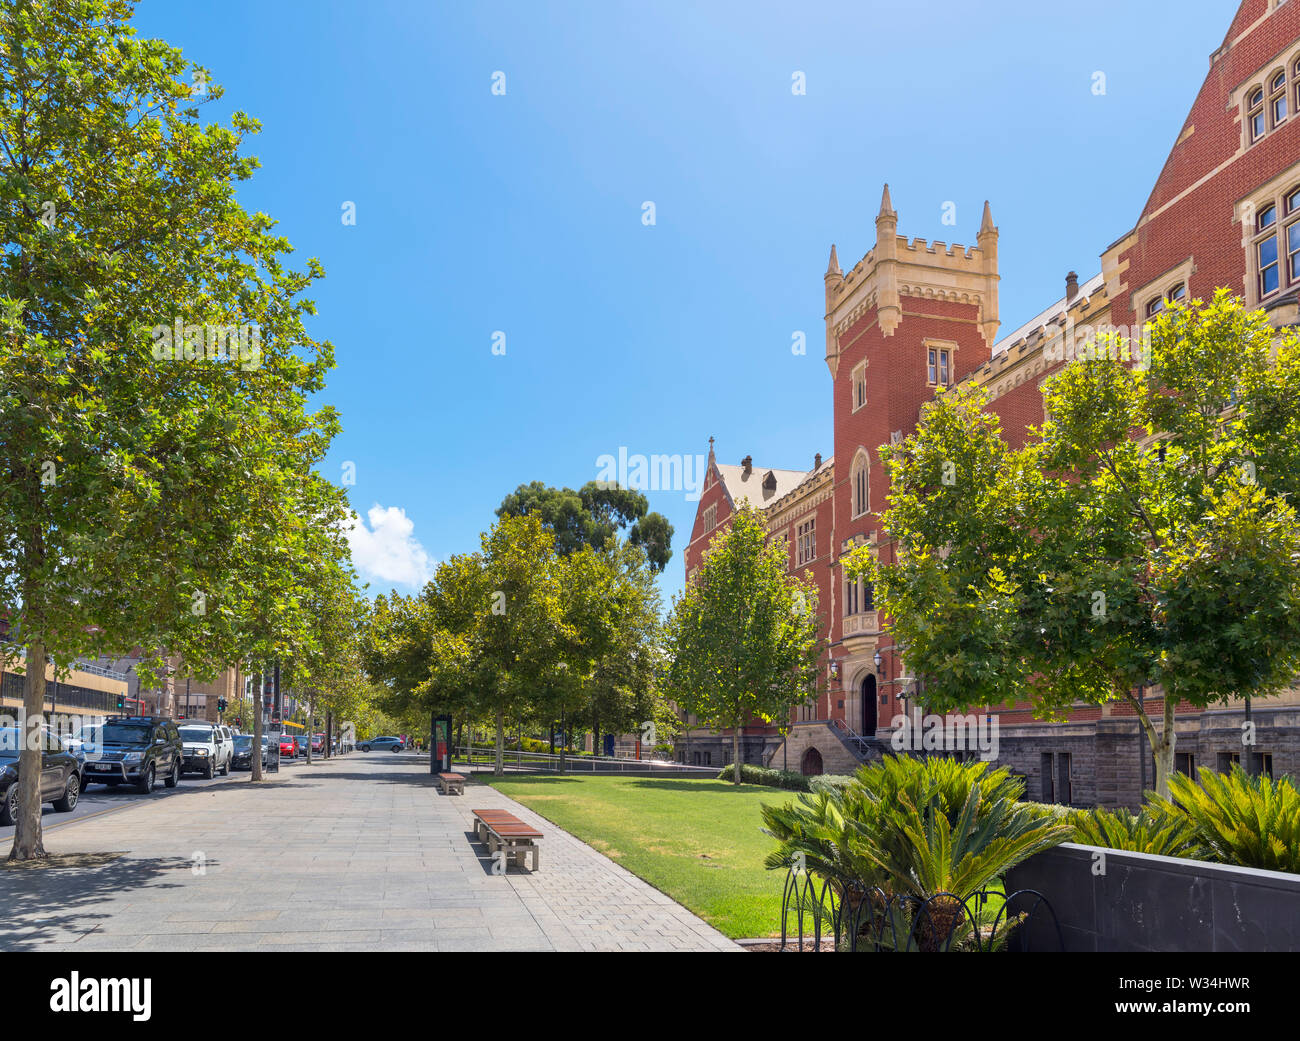 North Terrace with the Brookman Hall building of the University of South Australia (UniSA) on the right, City East Campus, Adelaide, South Australia Stock Photo